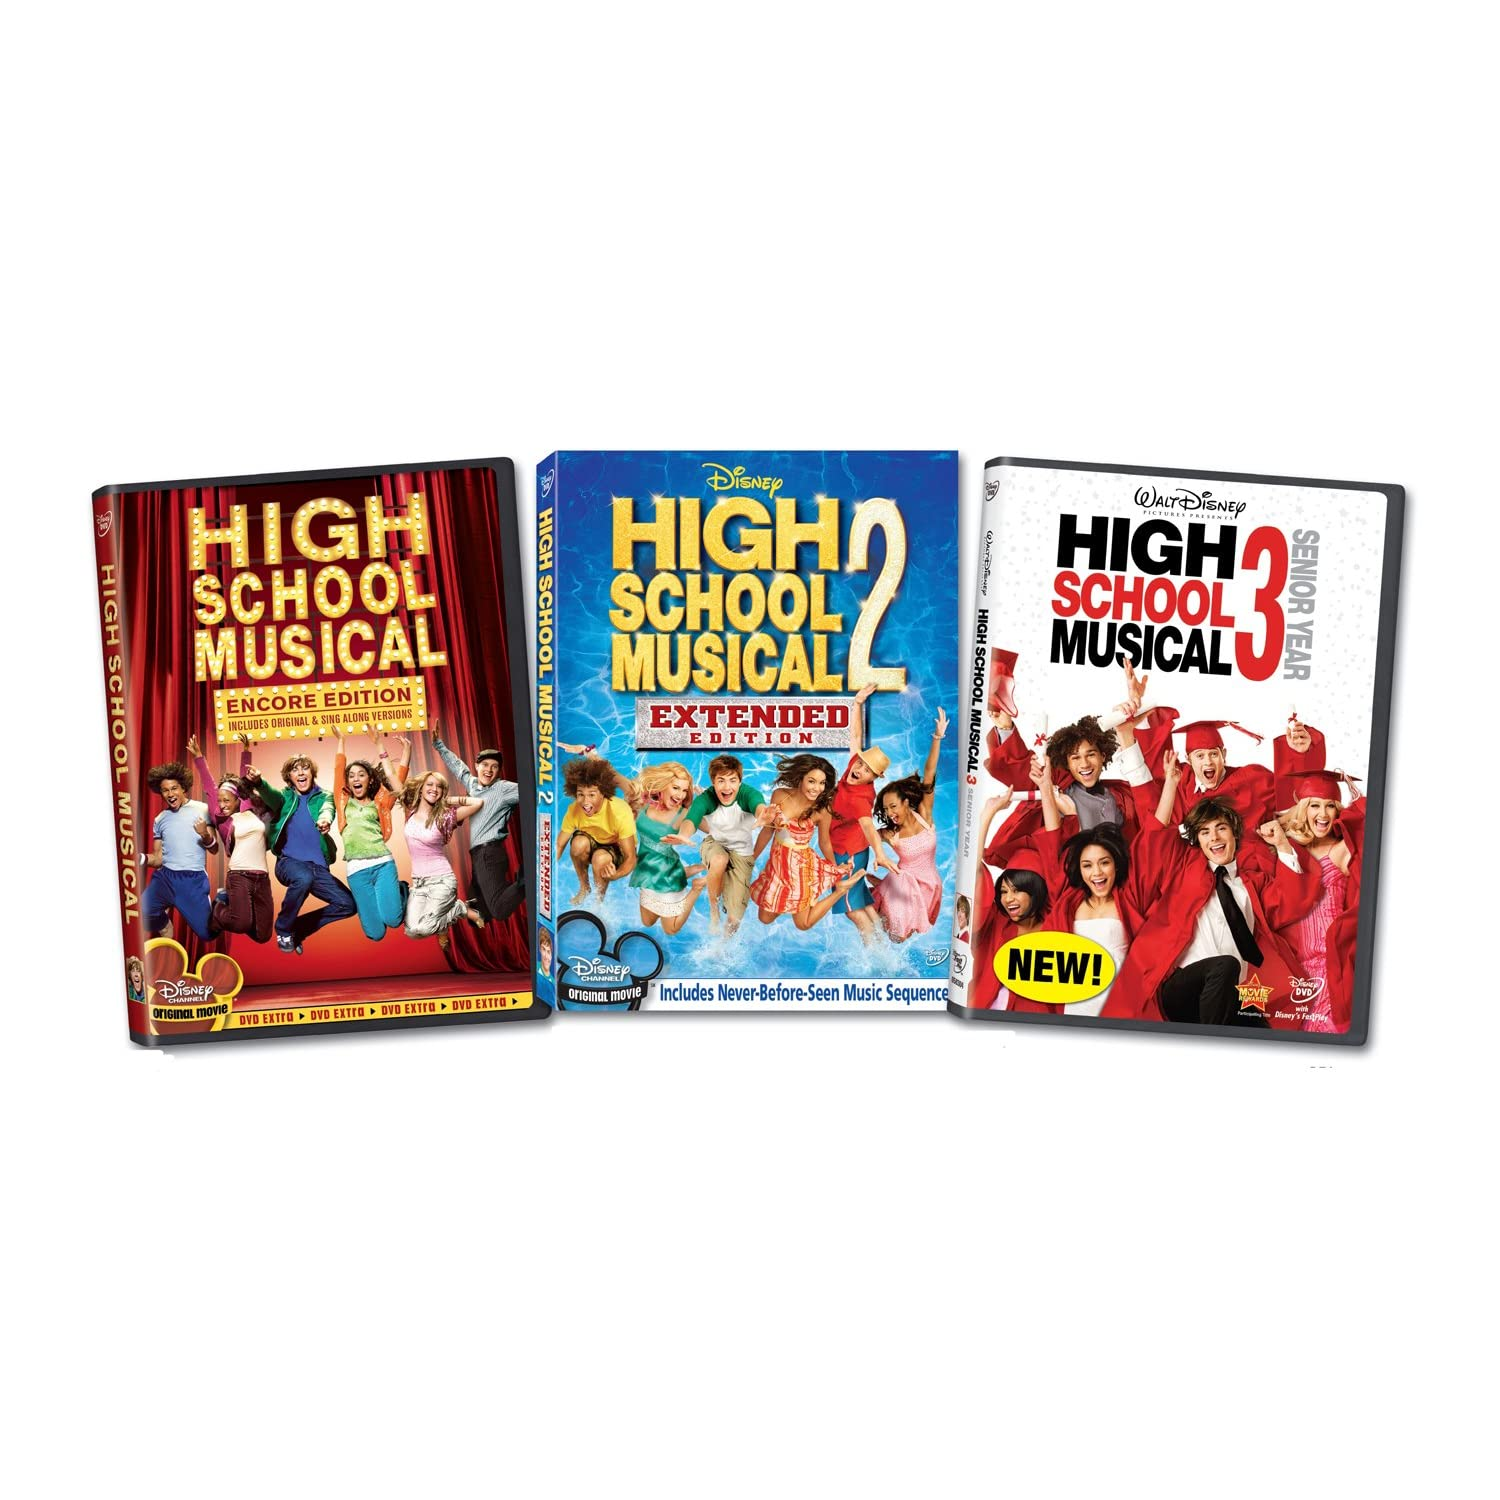 High School Musical Trilogy DVDRip - Samples Included